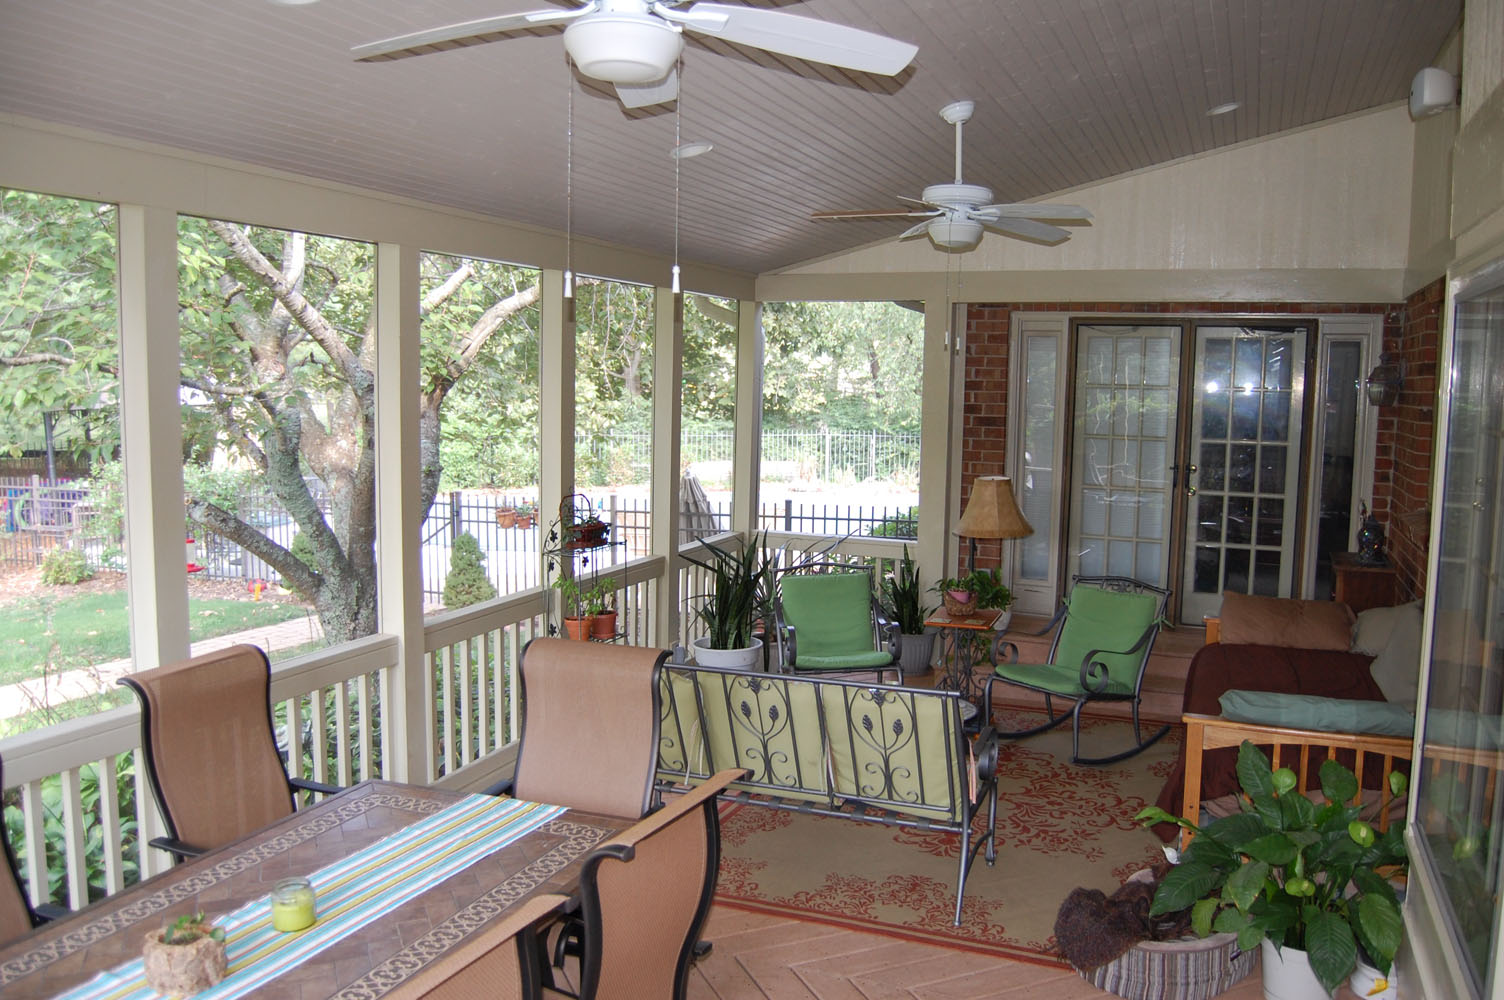 Interior Screened Porch : Screen porch franklin interior costello construction llc